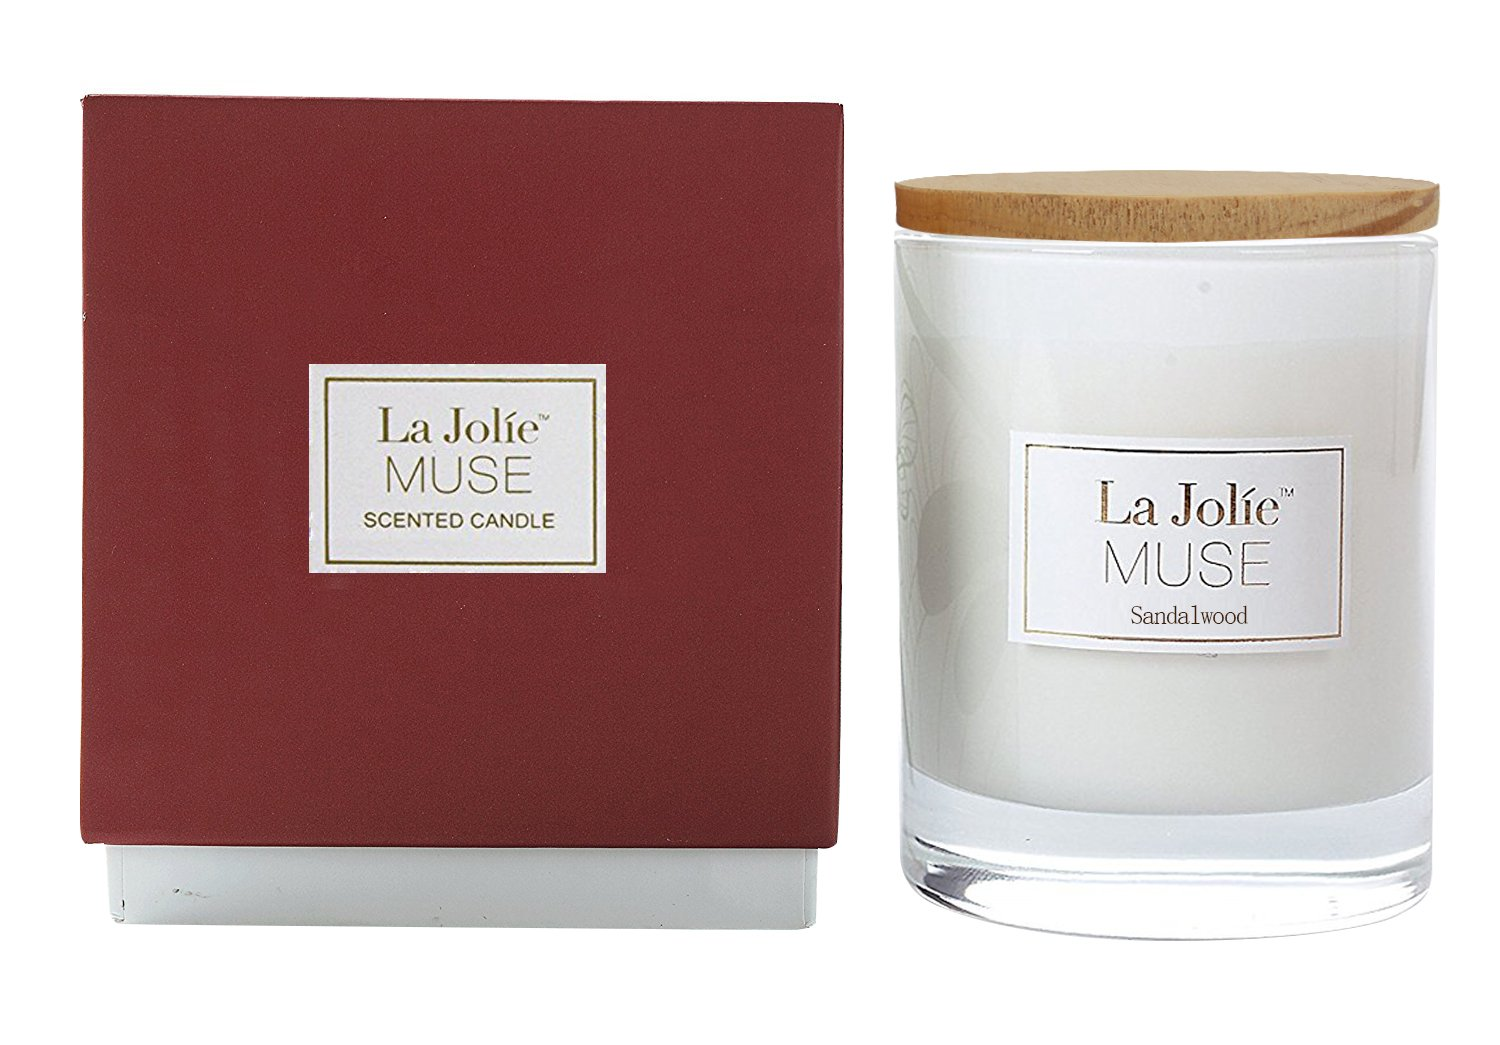 LA JOLIE MUSE Wood Wick Soy Candles Sandalwood Scented Glass Jar Candle, 45 Hours Burning, Gift by LA JOLIE MUSE (Image #2)